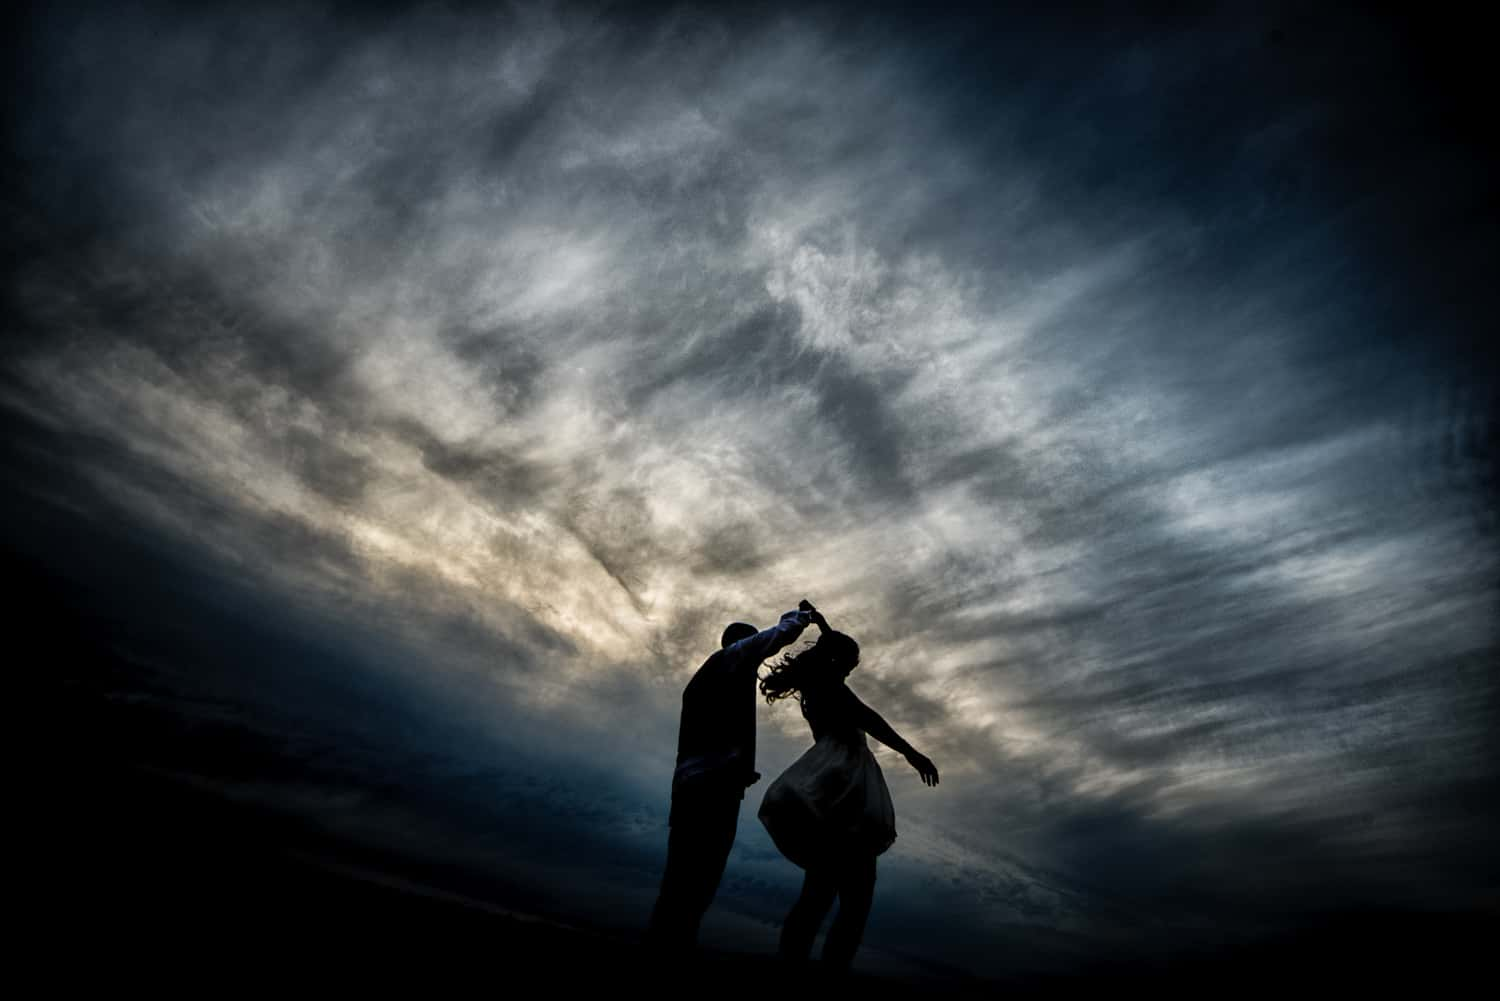 Bride and groom twirling in front of dramatic cloudy sky